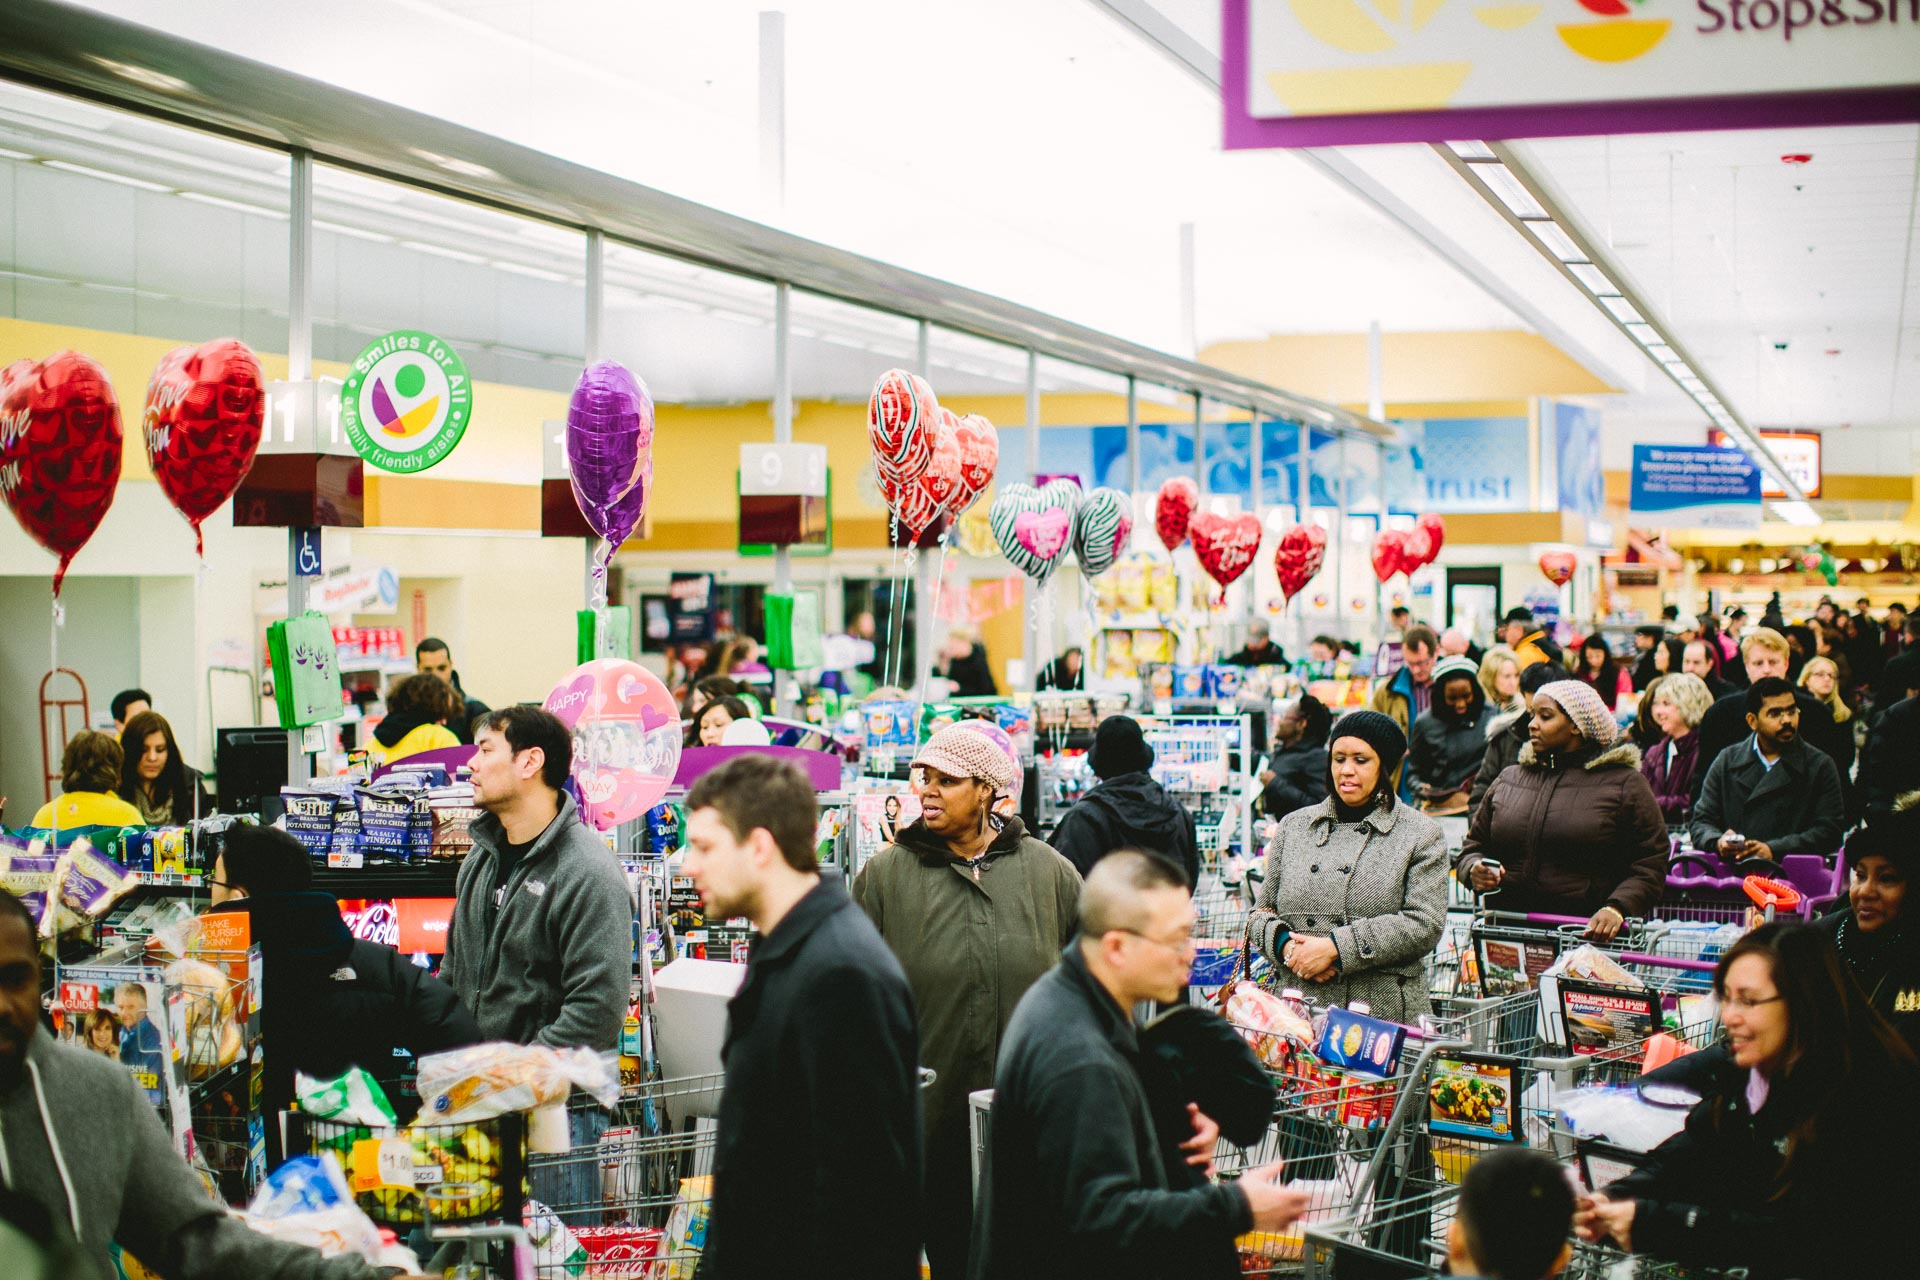 Customers wait at the North Quincy Stop and Shop ahead of Winter Storm Nemo